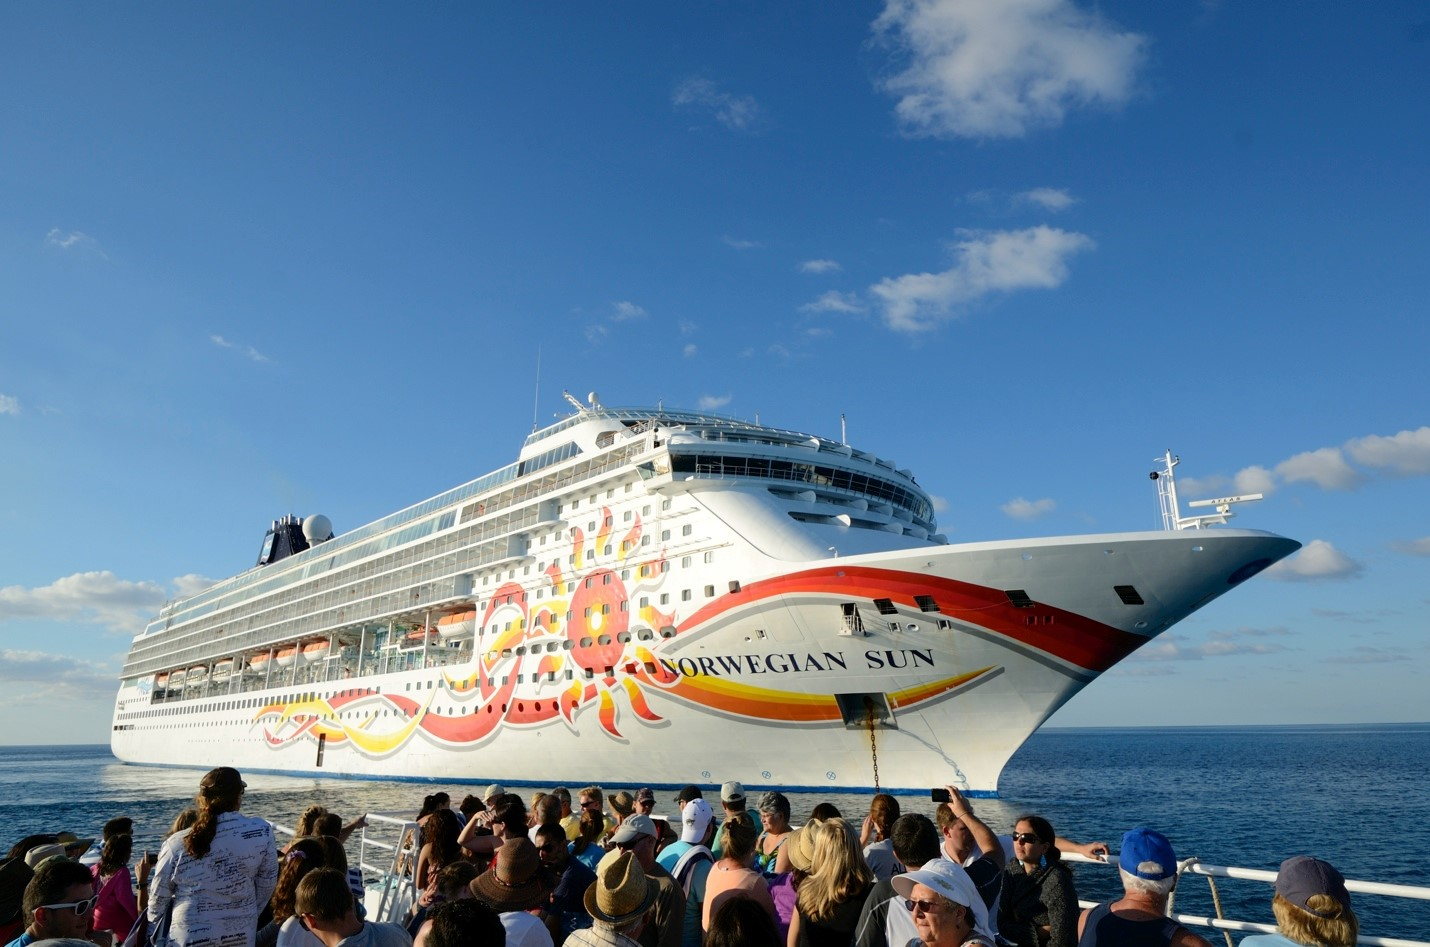 New Norwegian Cruise Ship Sets Social Media Record